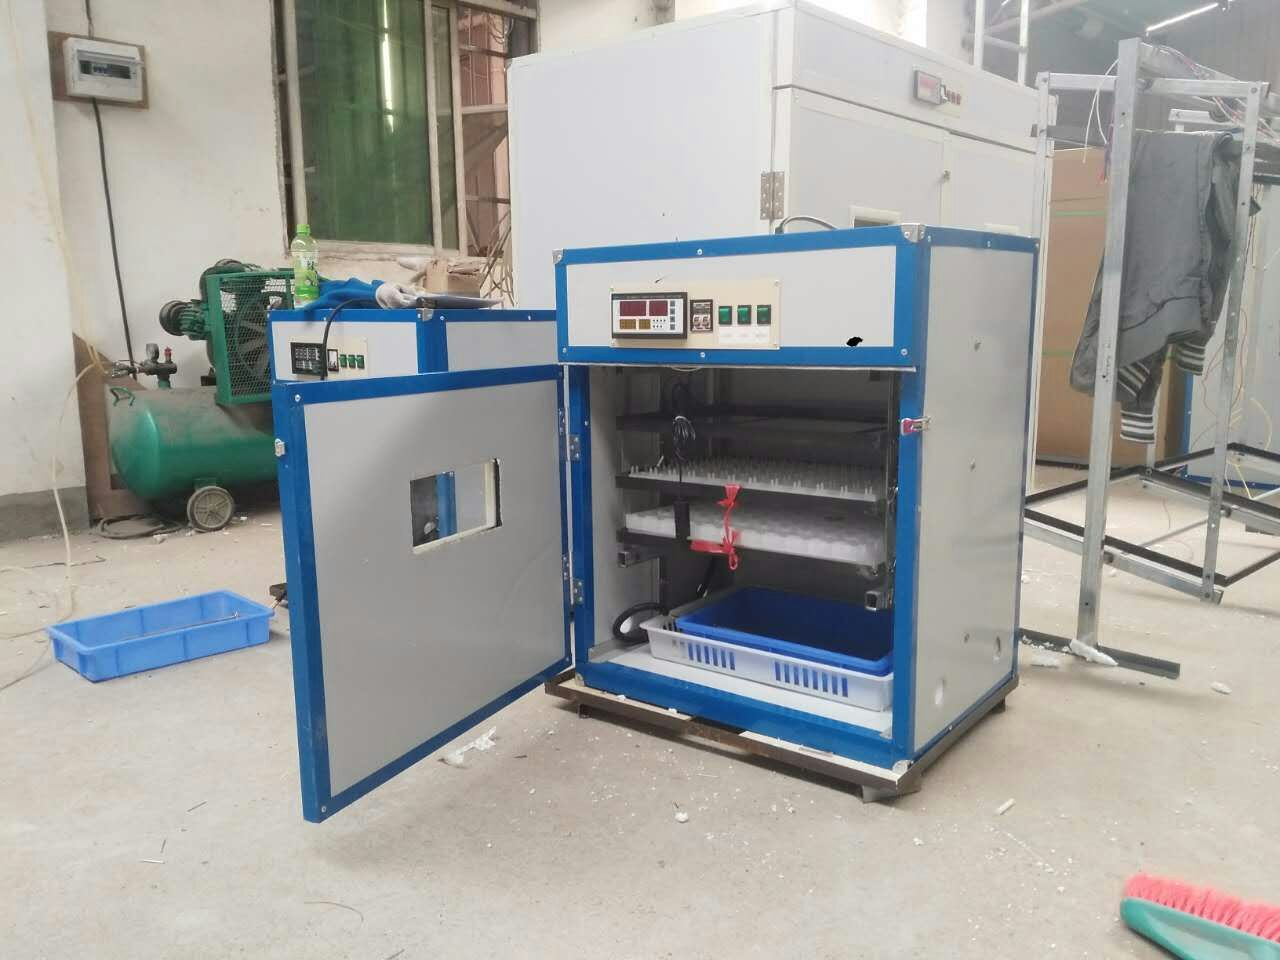 Automatic Quail Egg Poultry Incubator Hatching Machine for Sale Bubai